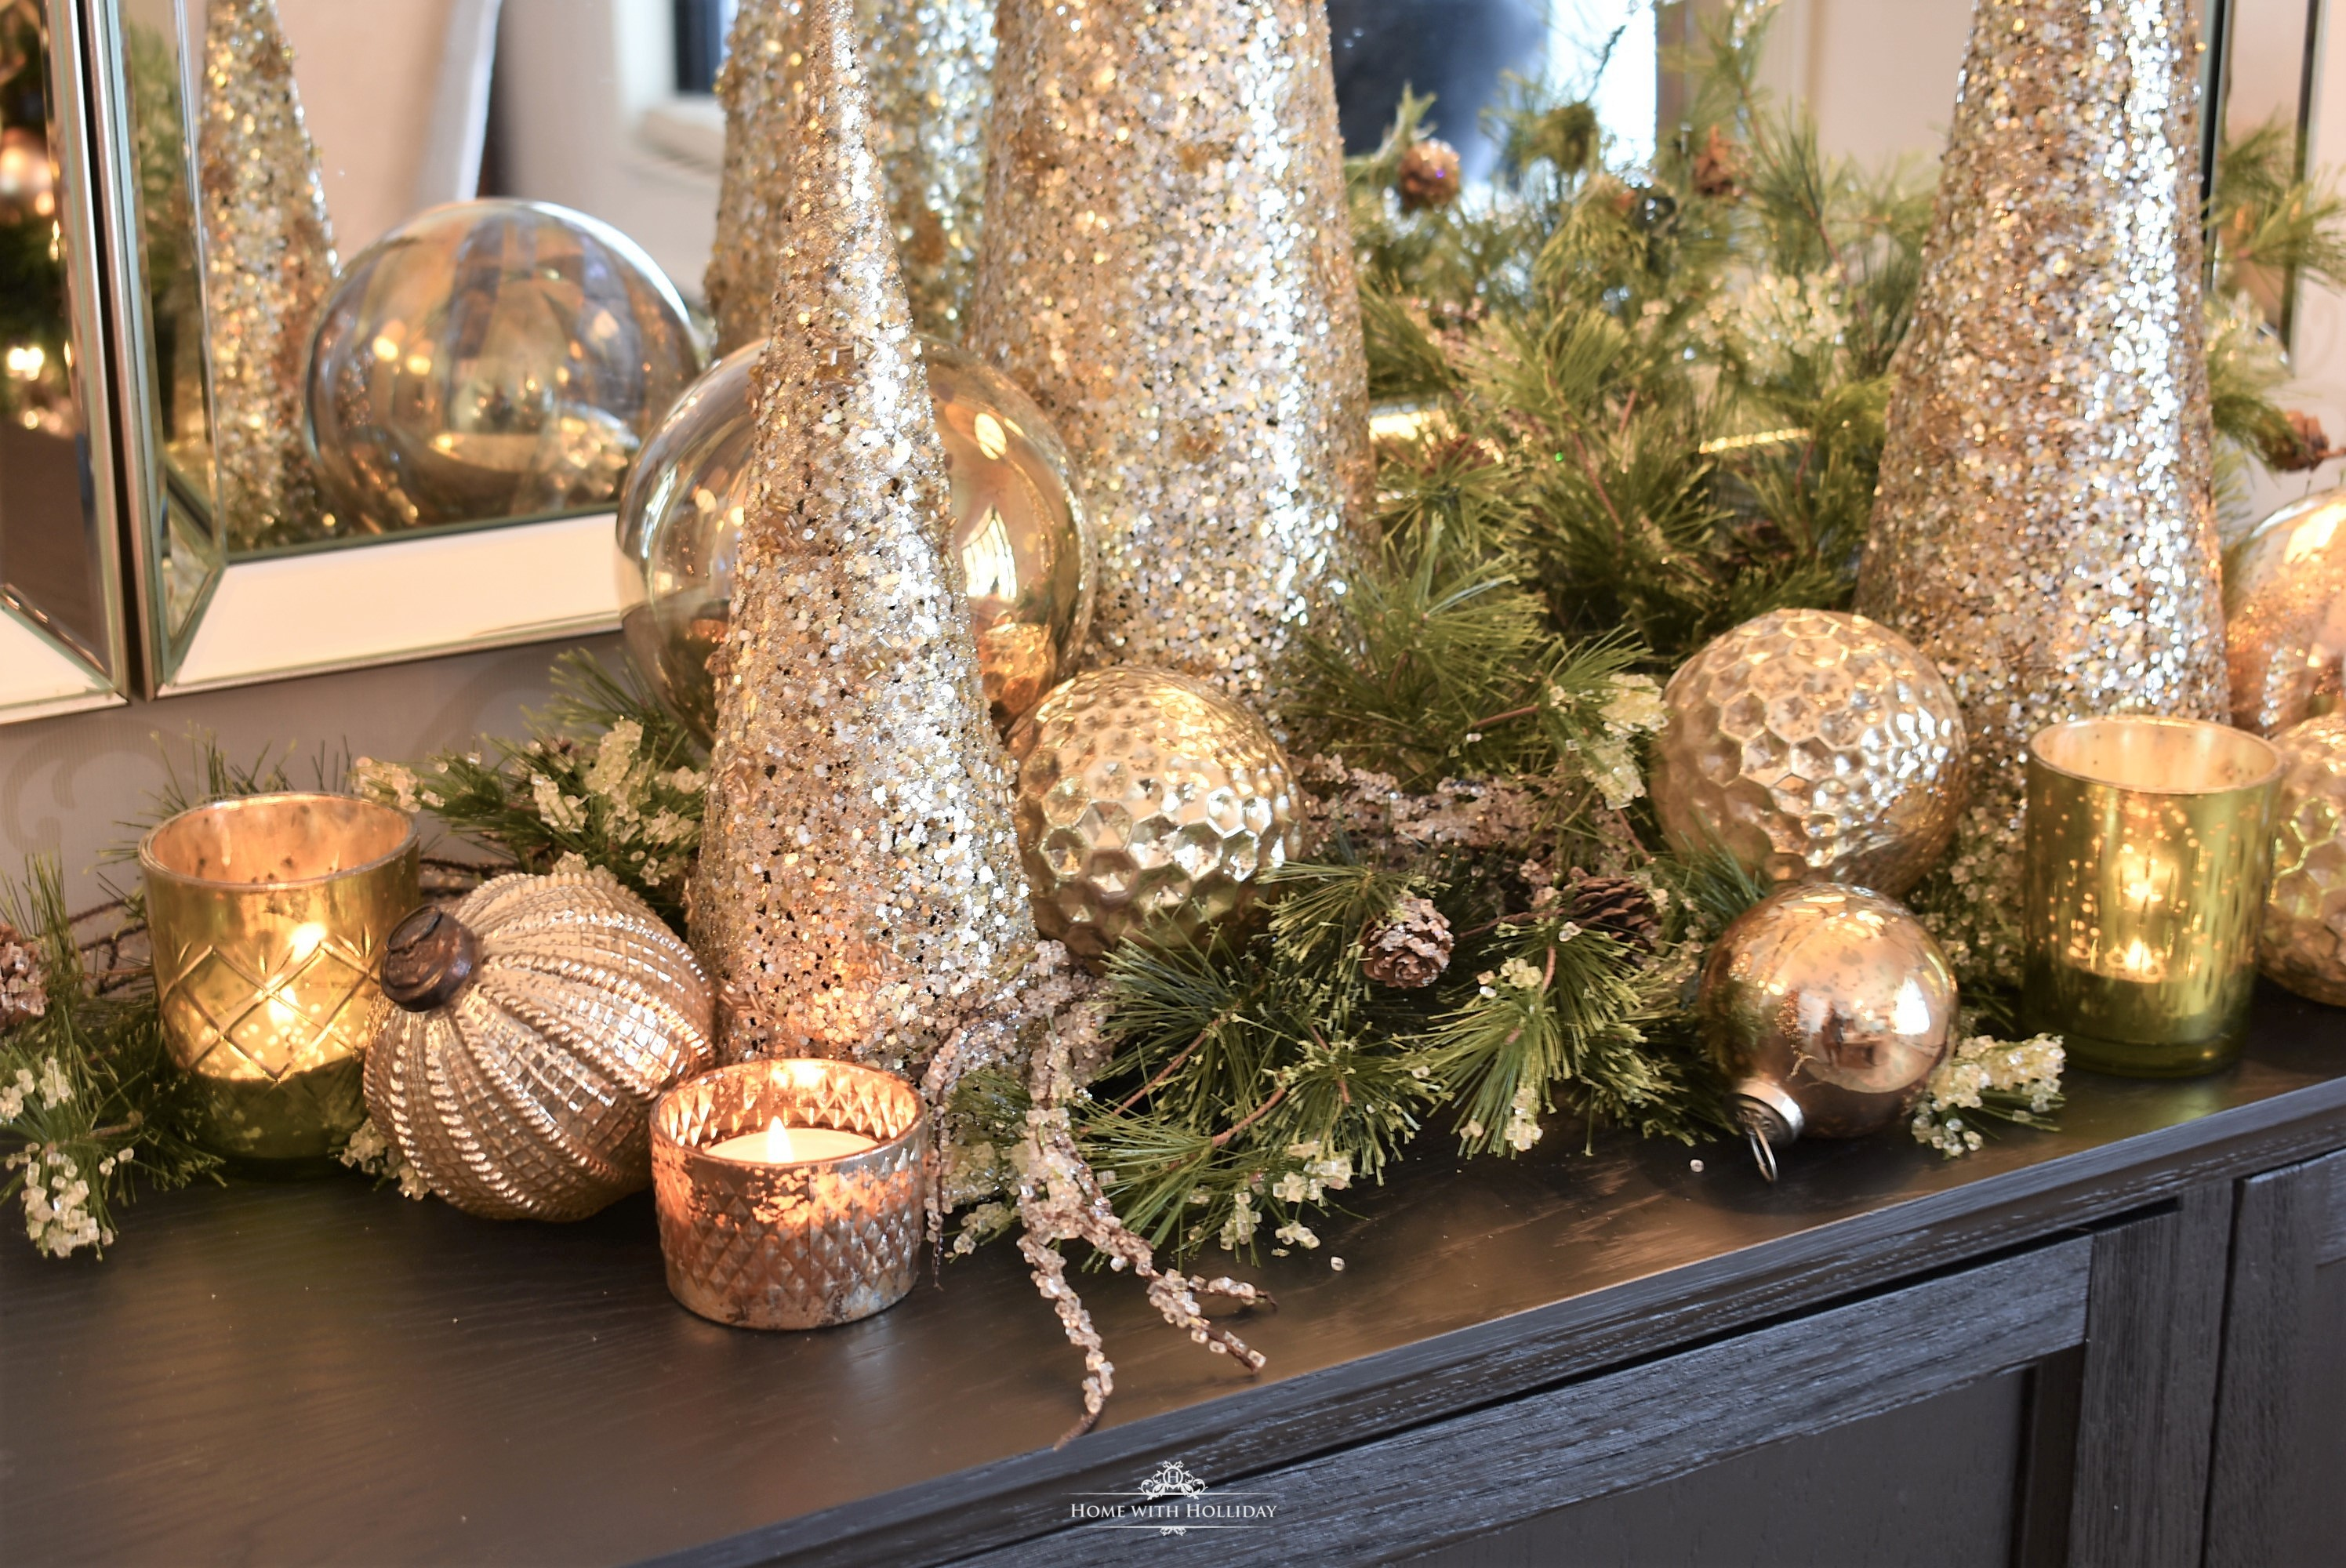 Silver and Gold Glam Christmas Vignette with gold balls and cone trees and votive candles